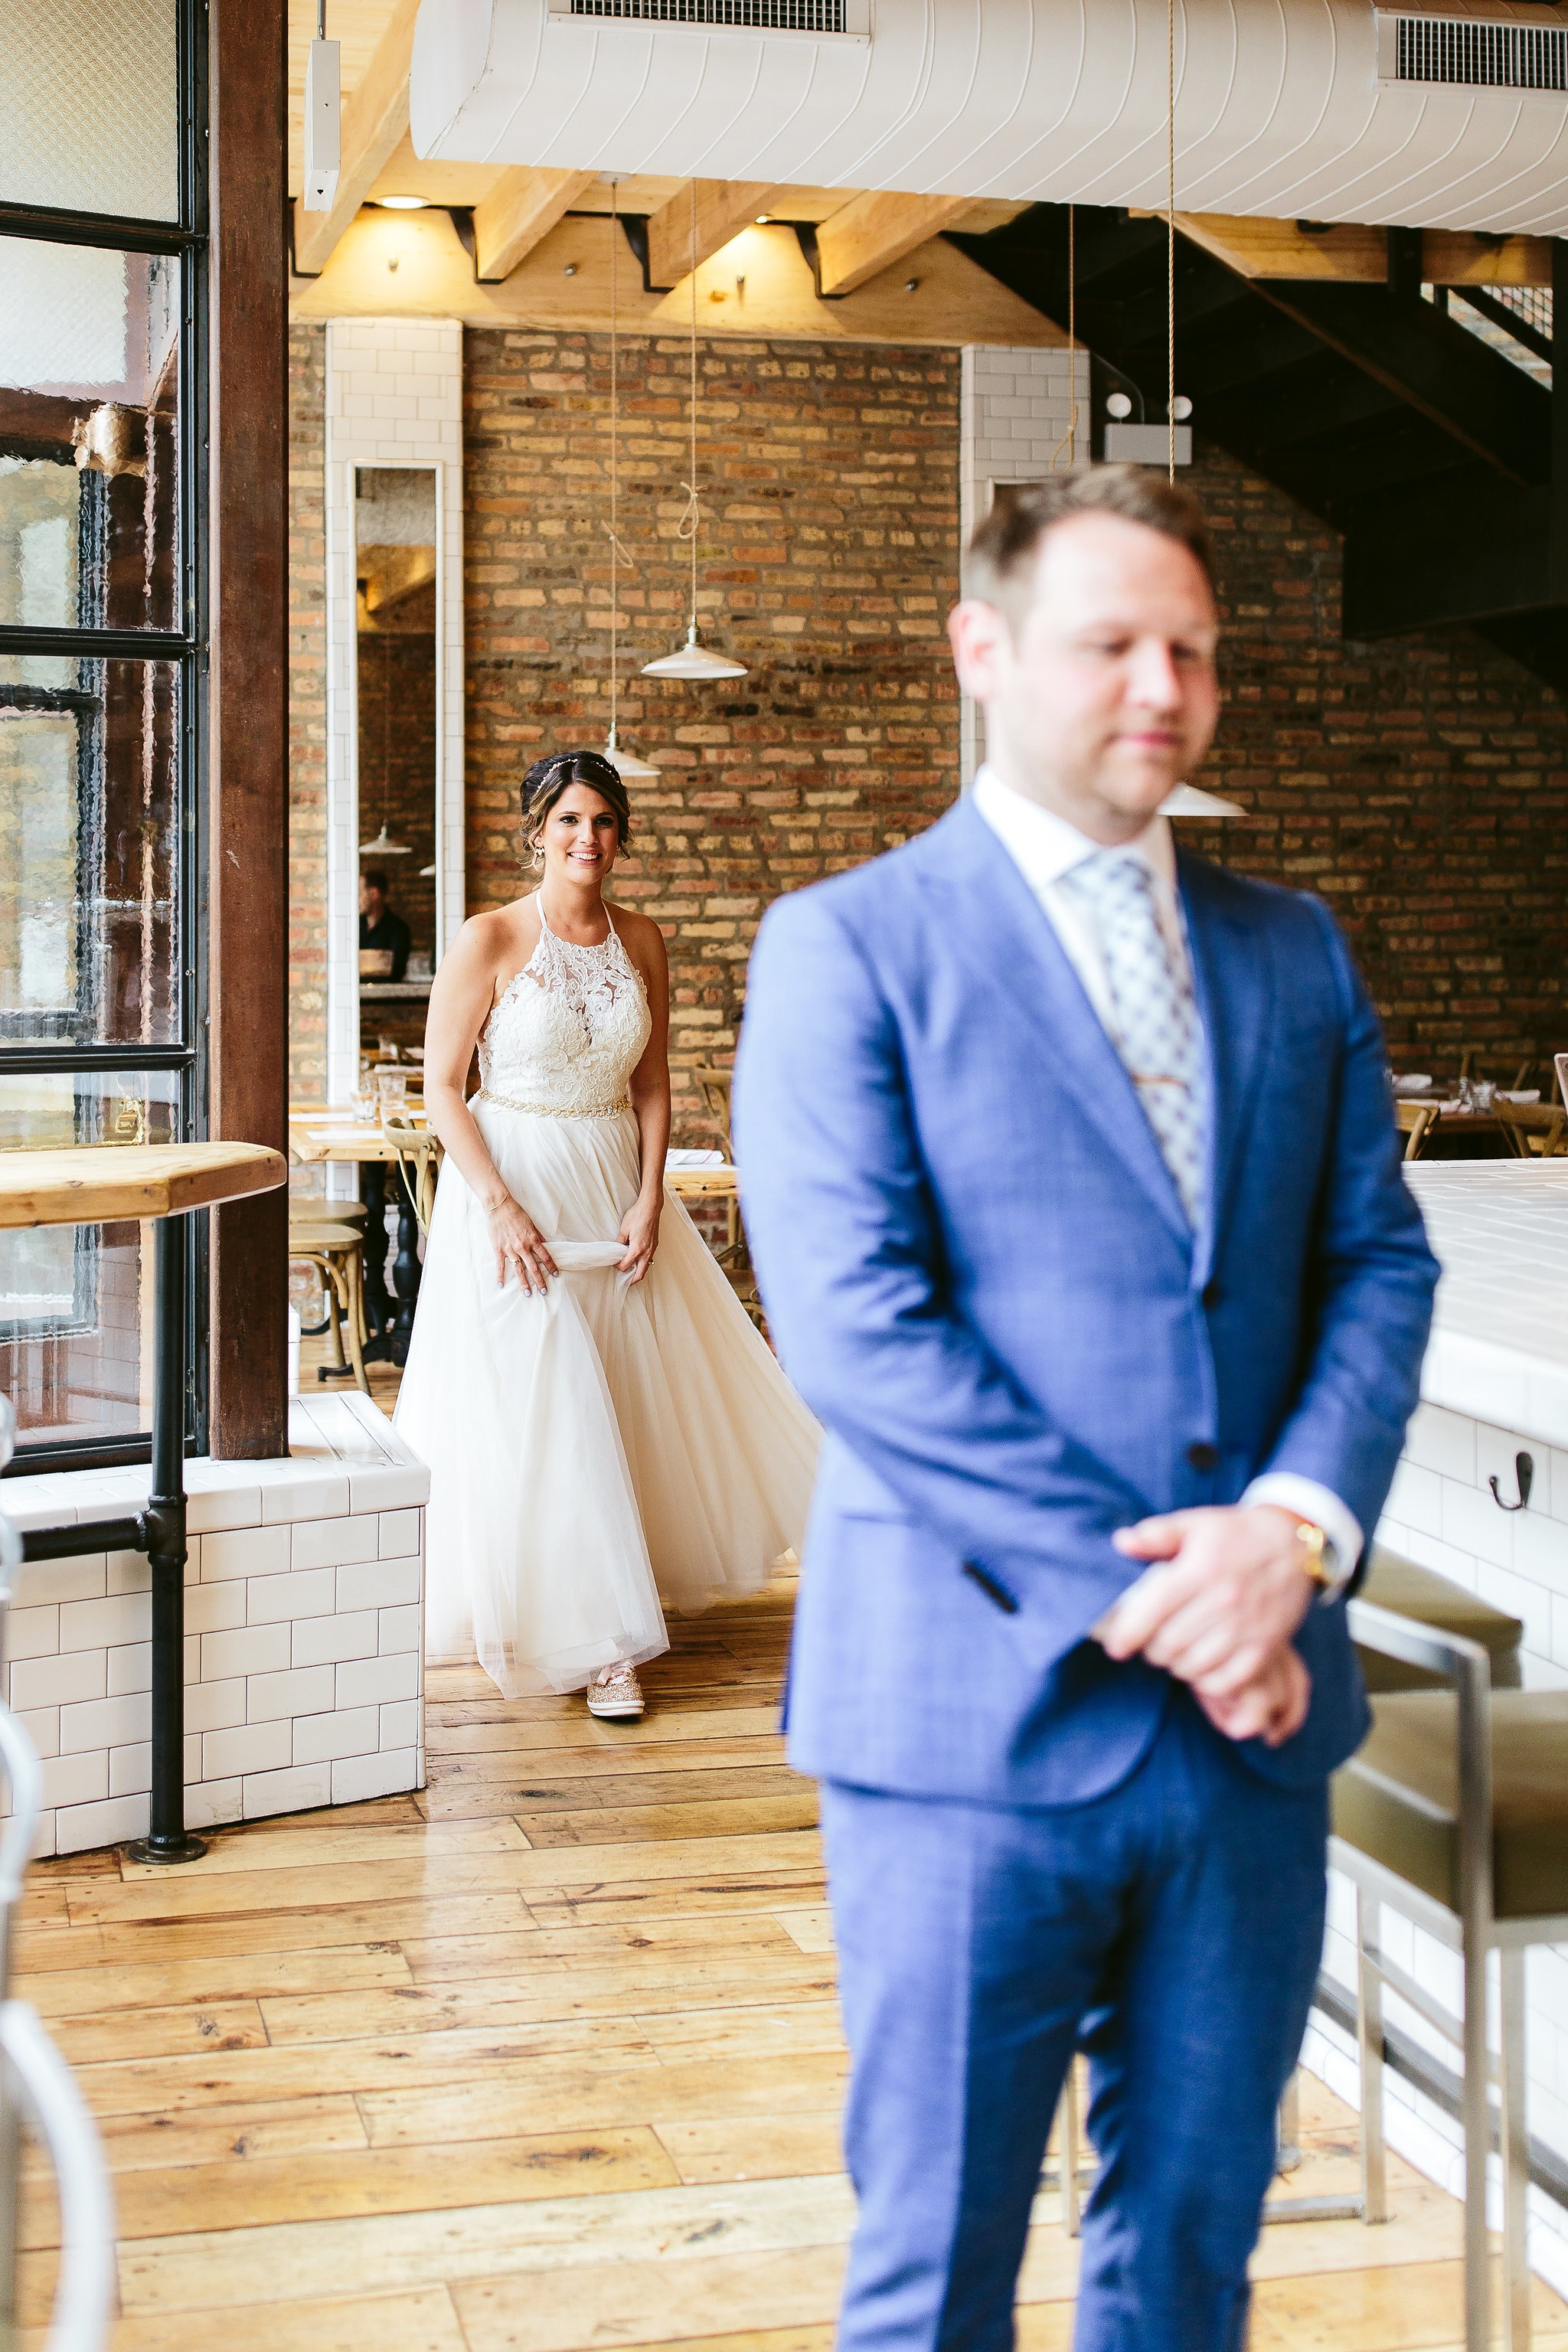 Nicodem-Creative-Wedding-Photography-Sean-Rebby-Ignite-Glass-Studios-Chicago-Inspiration-Style-Matters-Life-In-Bloom-Premier-Trolley